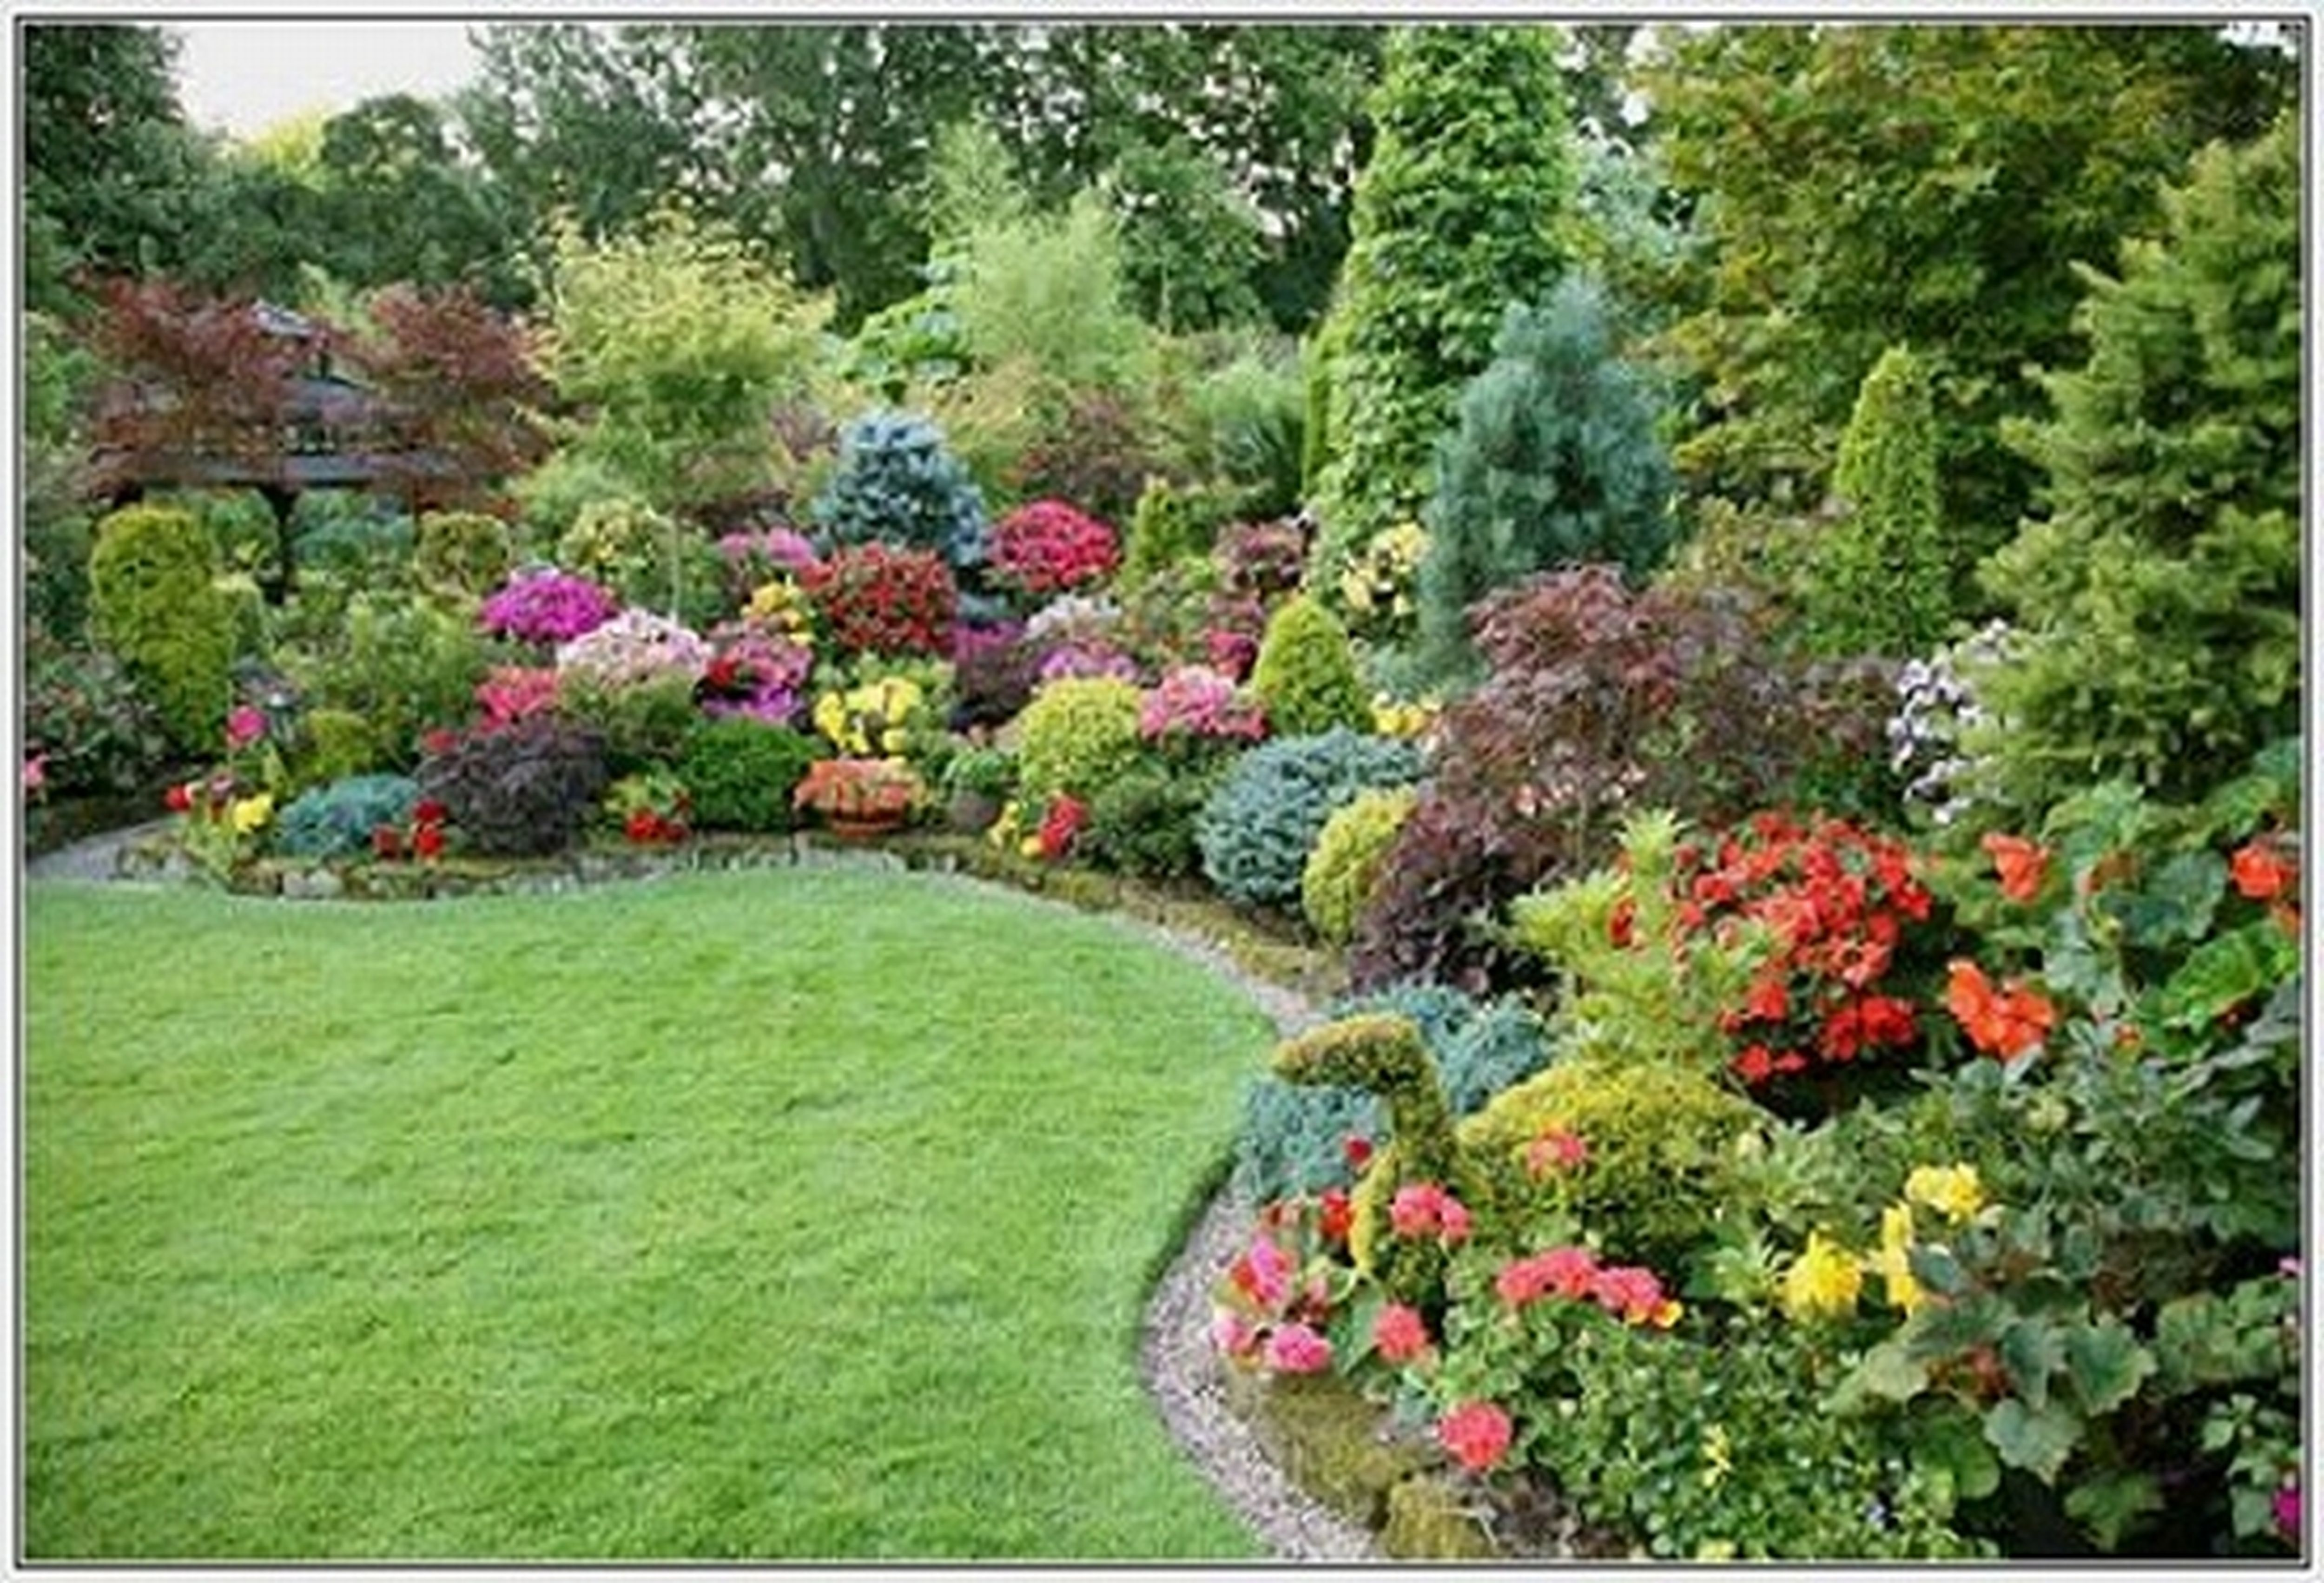 Home Garden An Amazing Colourful Backyard Comes Alive With Visually Vibrant